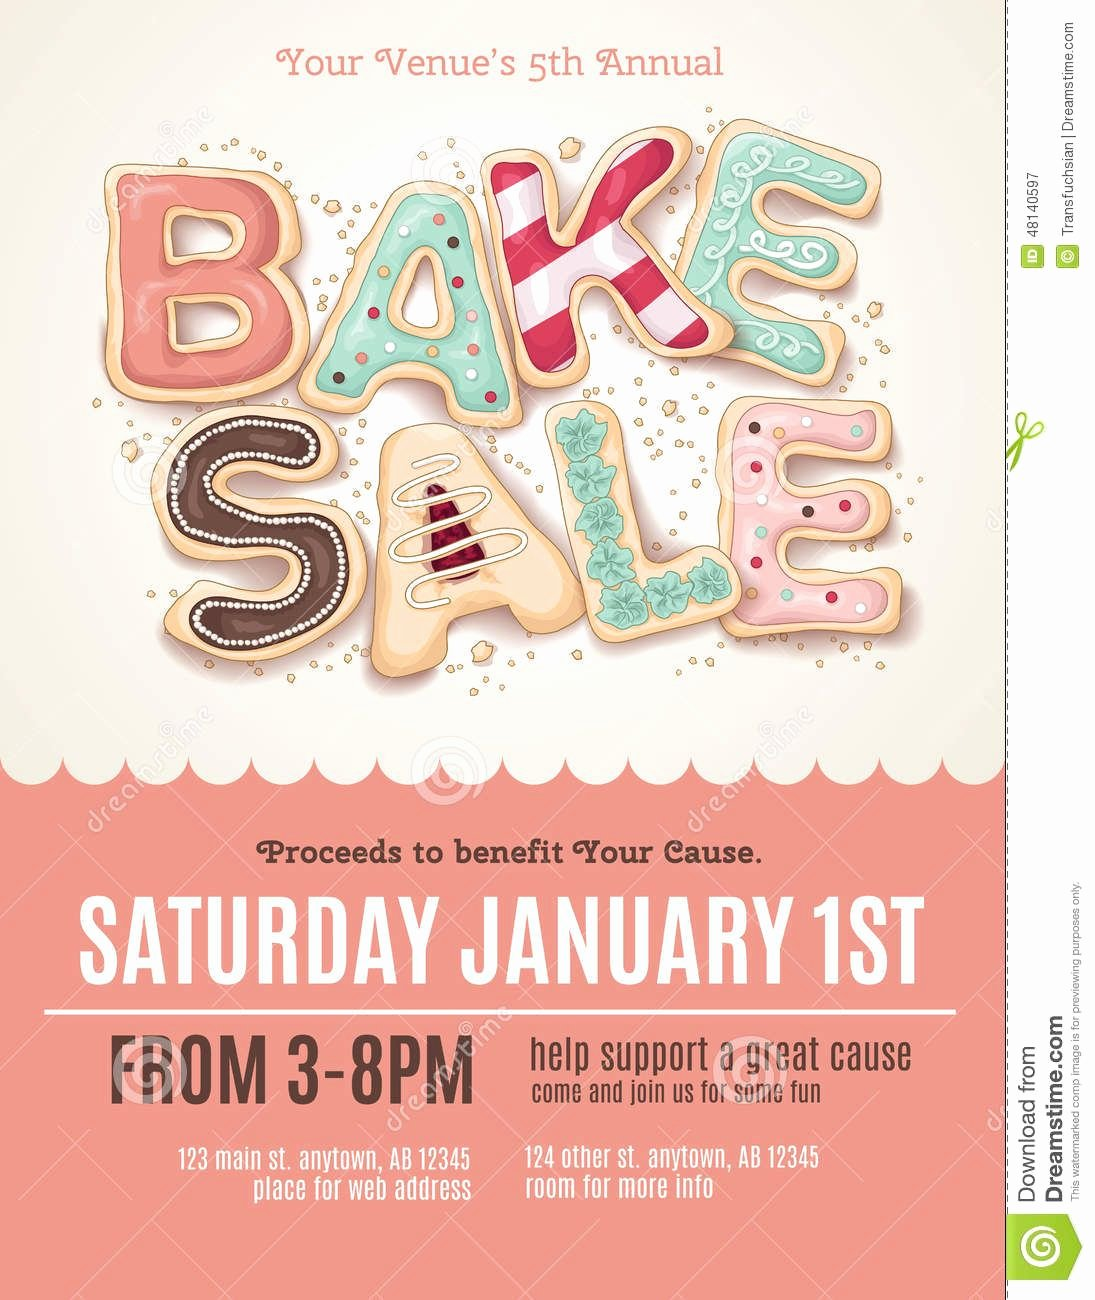 Bake Sale Flyer Template Best Of Fun Cookie Bake Sale Flyer Template Download From Over